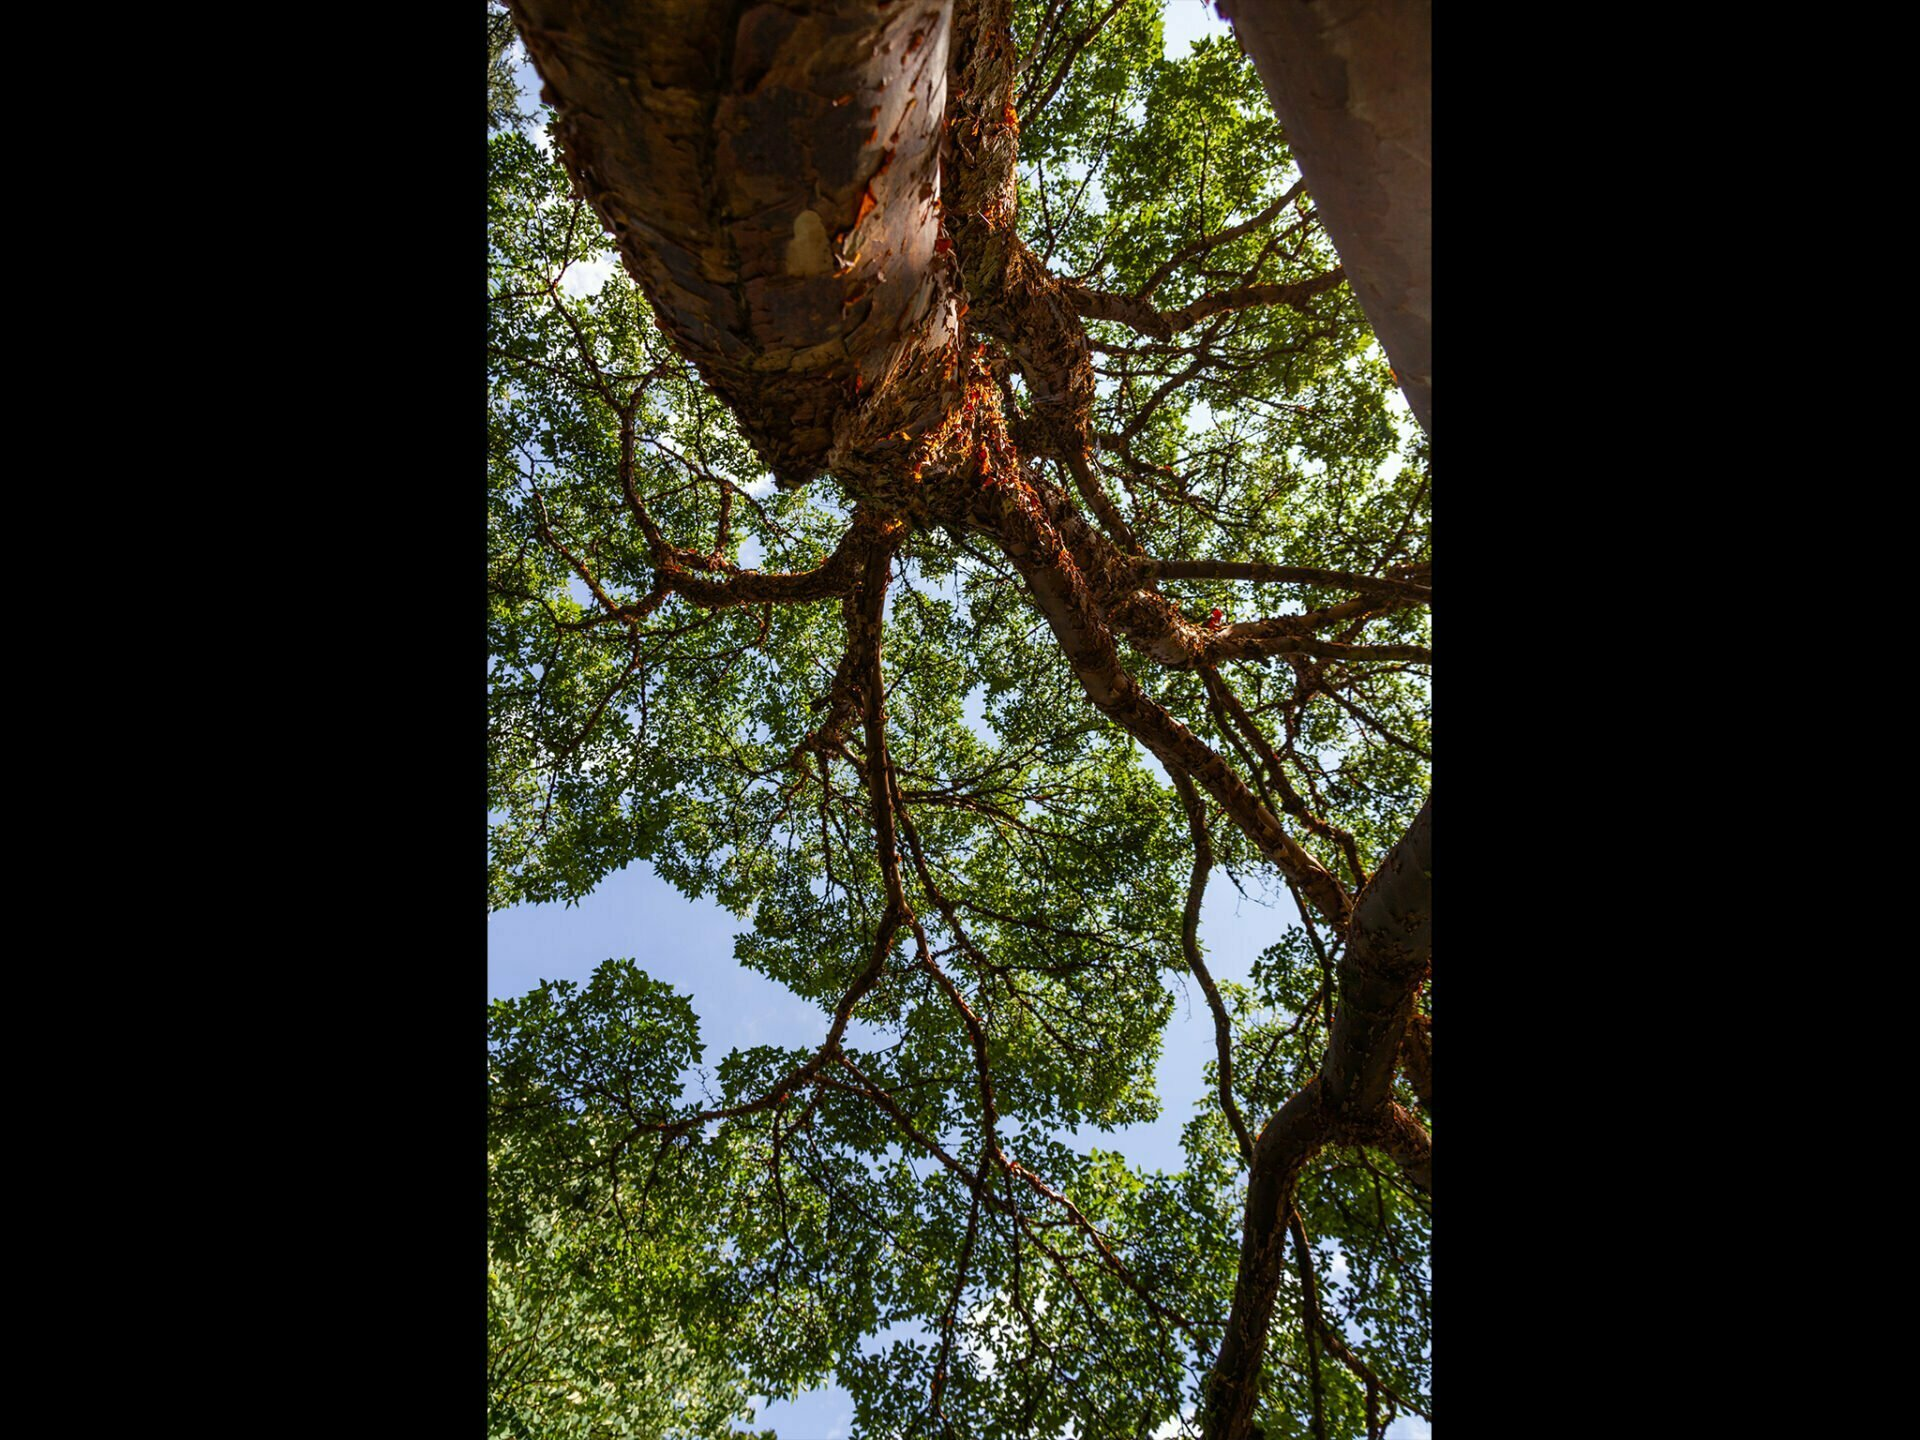 Looking up at tree branches from below with blue sky above